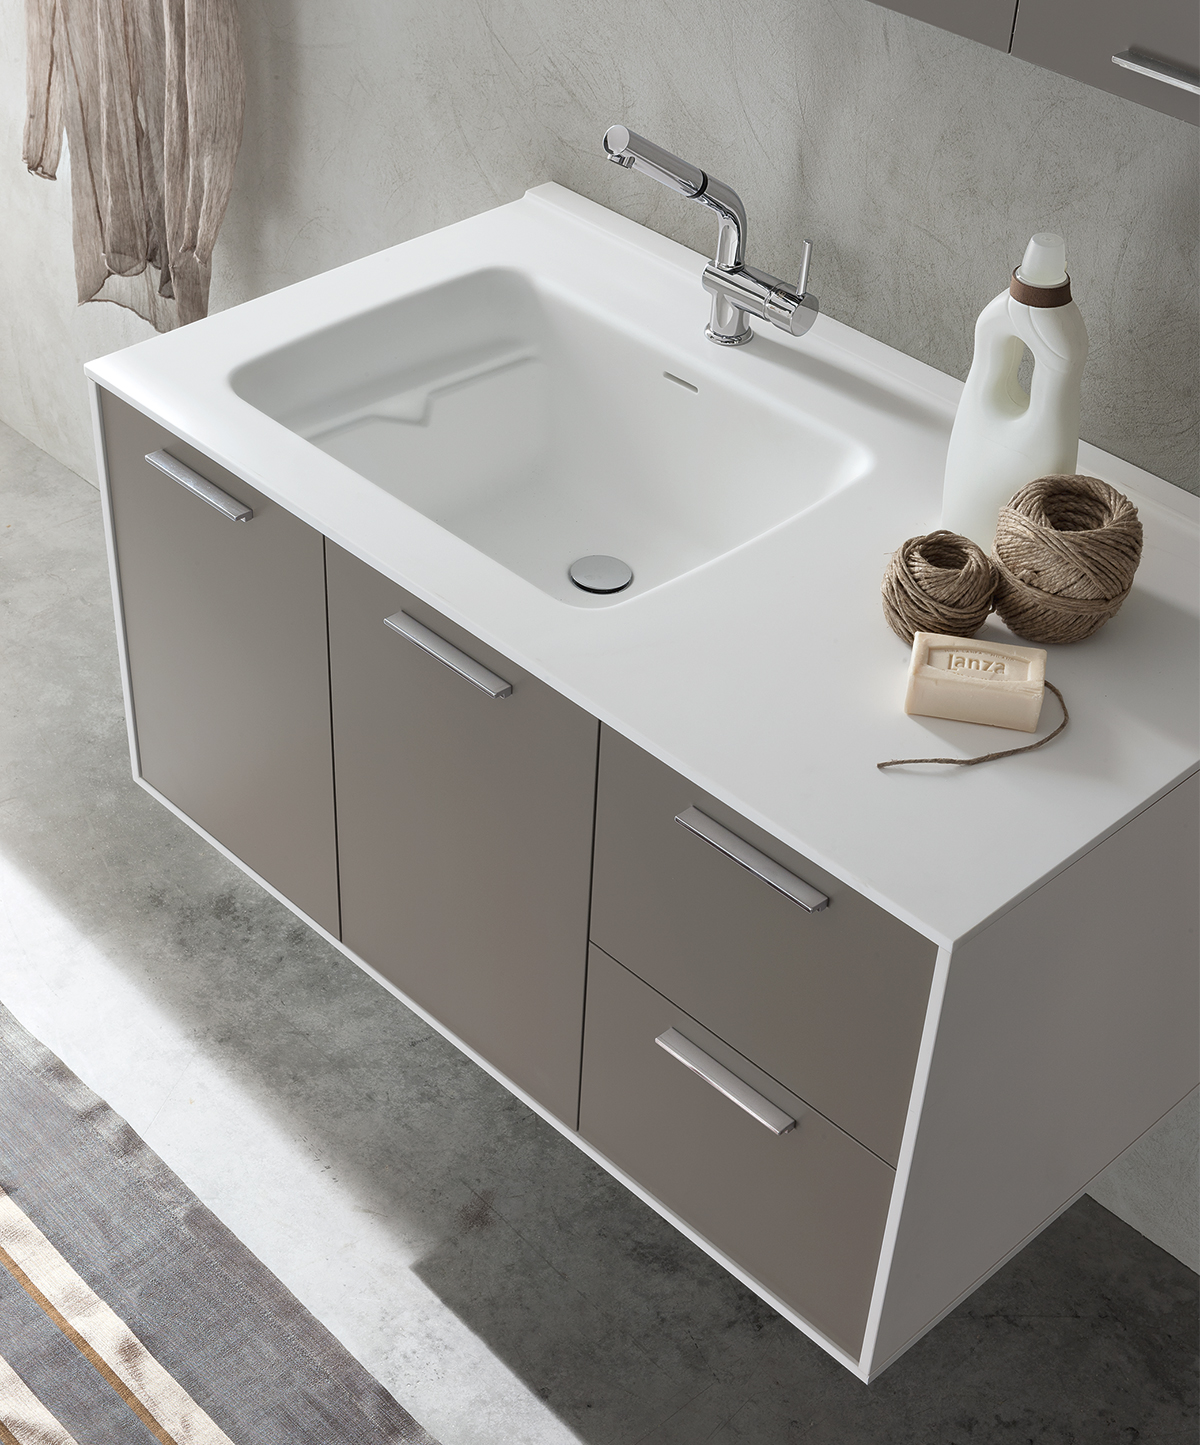 mobile lavabo in Teknoril